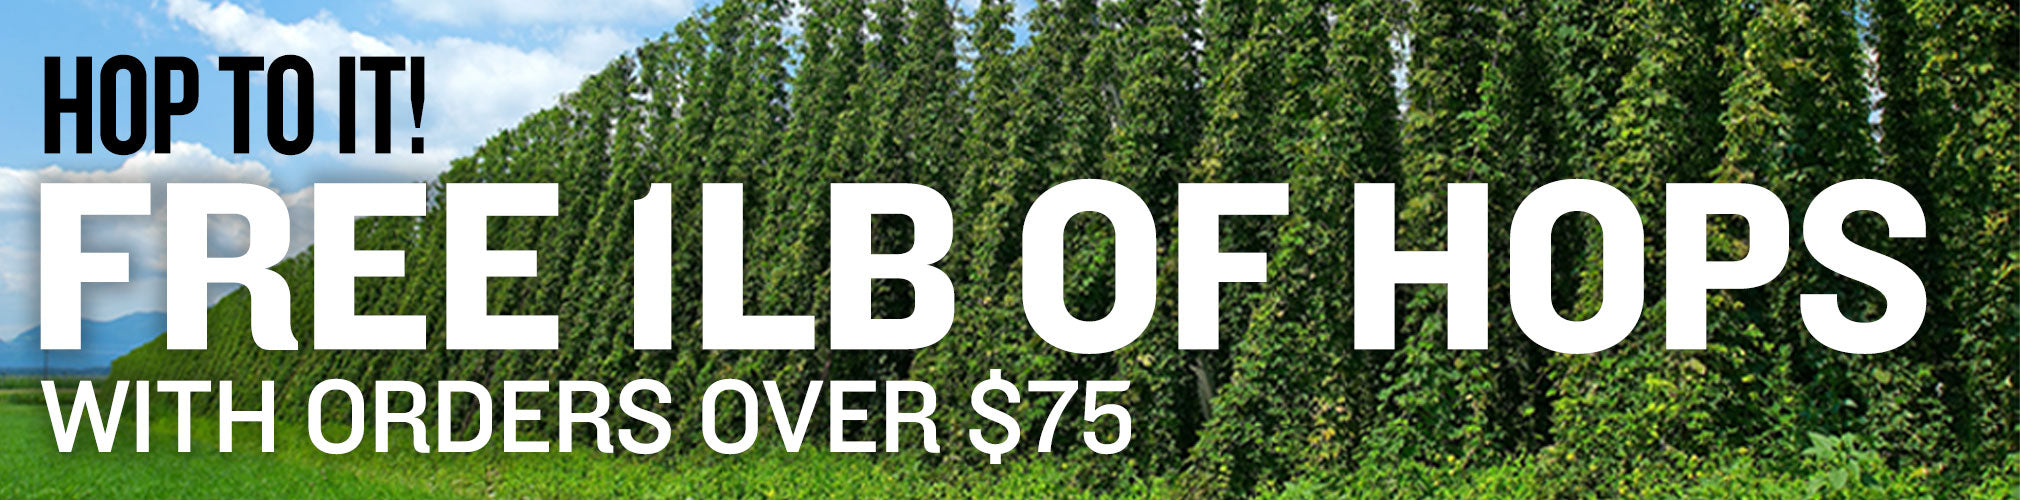 Free 1 lb of Select Hops With Orders Over $75